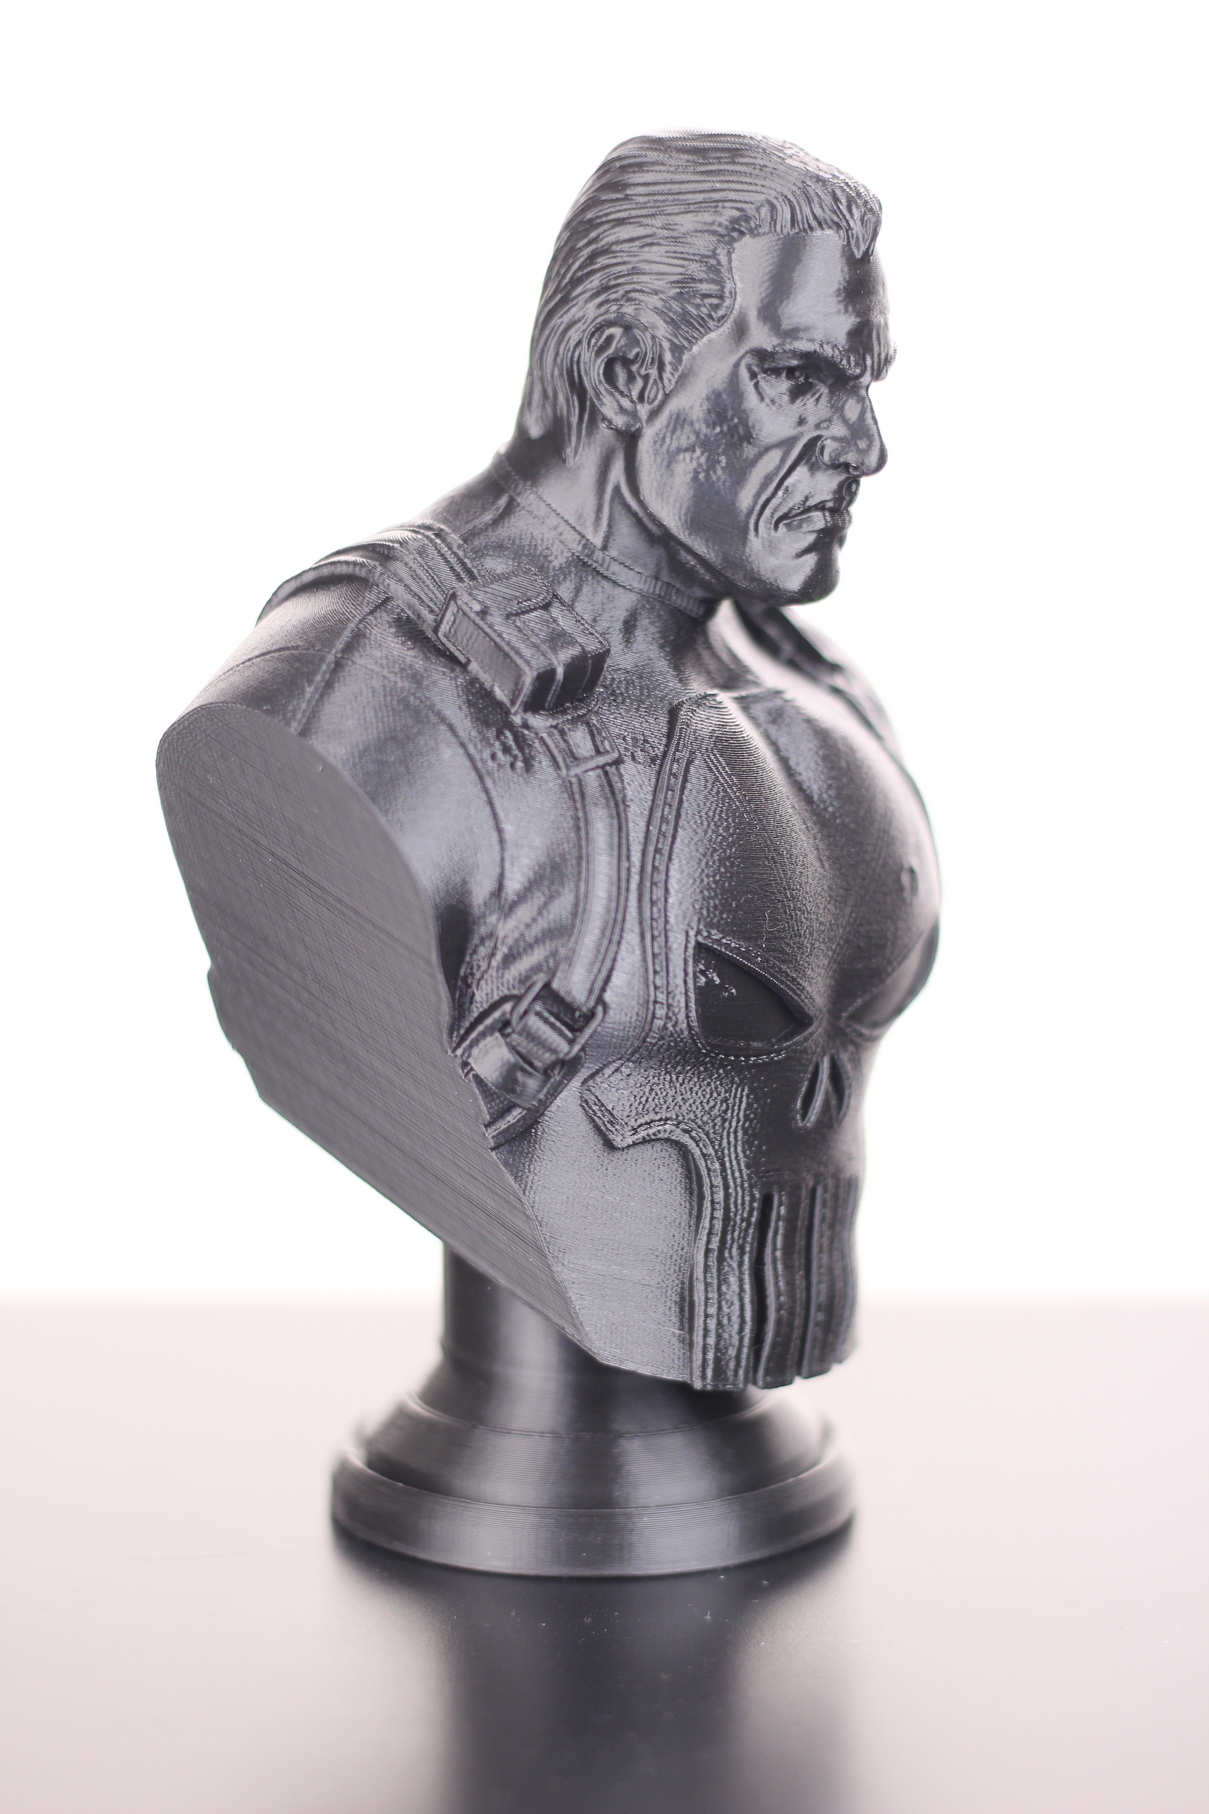 The-Punisher-on-Ender-3-Max-2